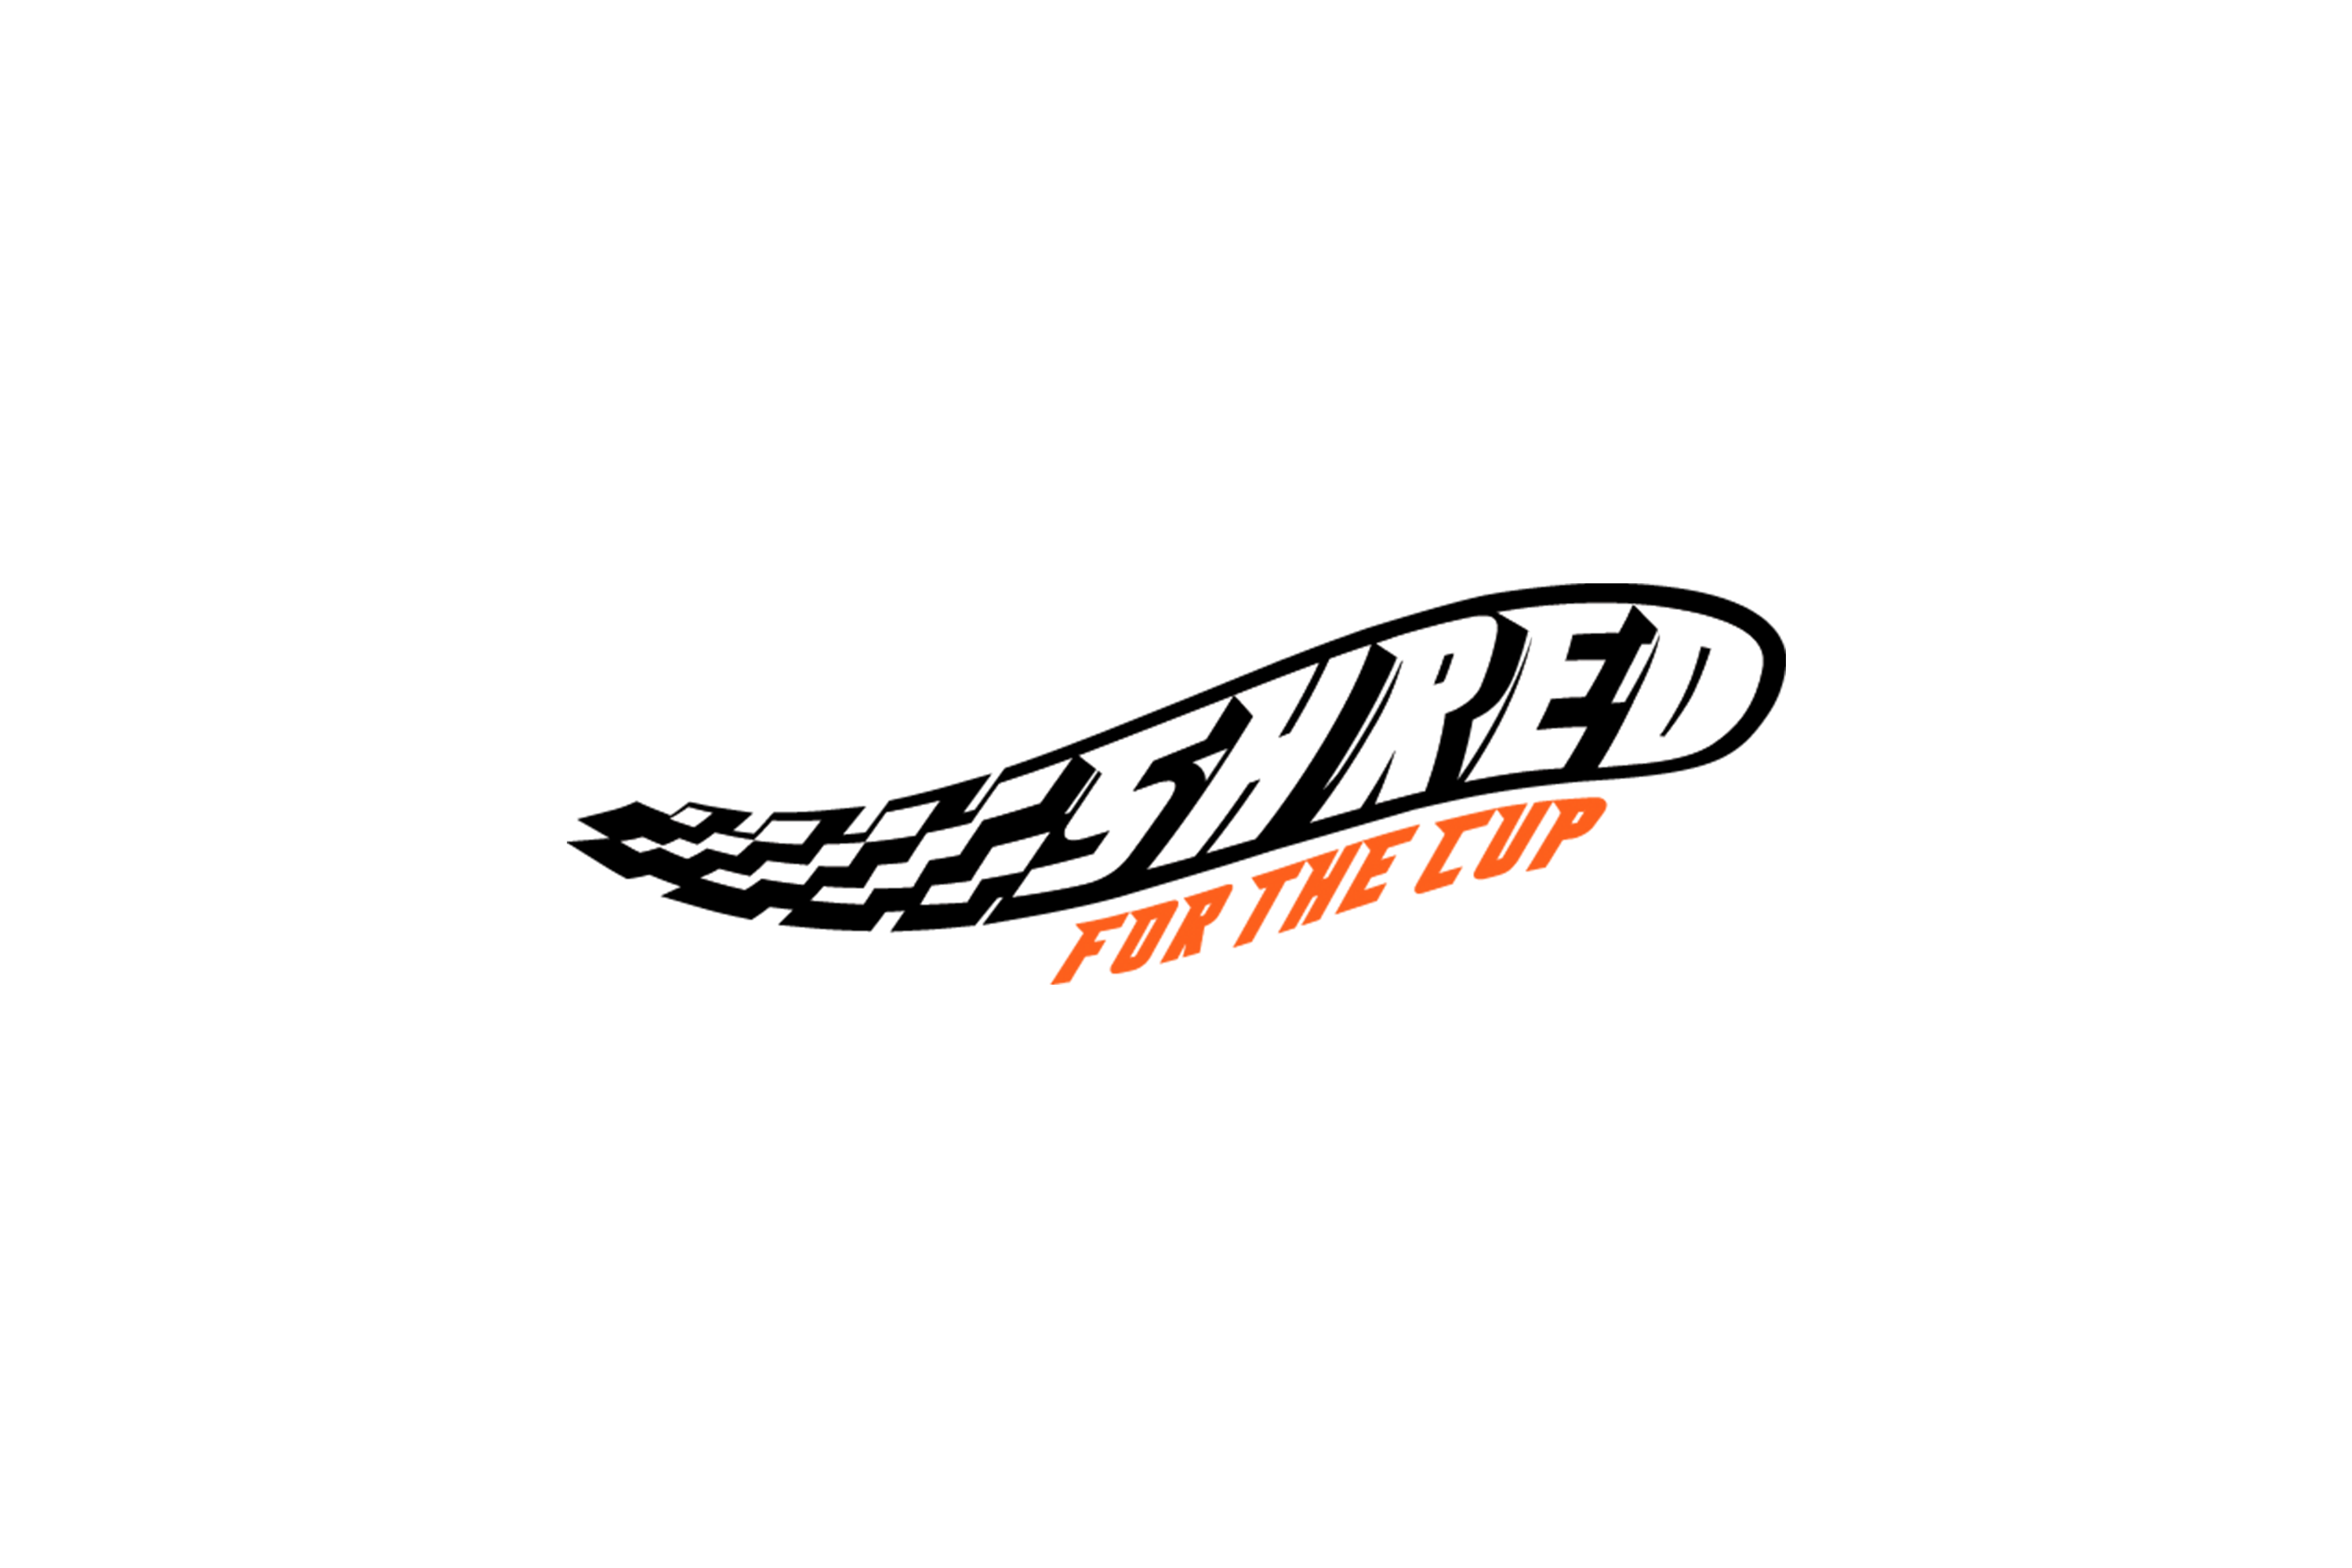 Chris-Reynolds-Logos-Shred-For-The-Cup-1